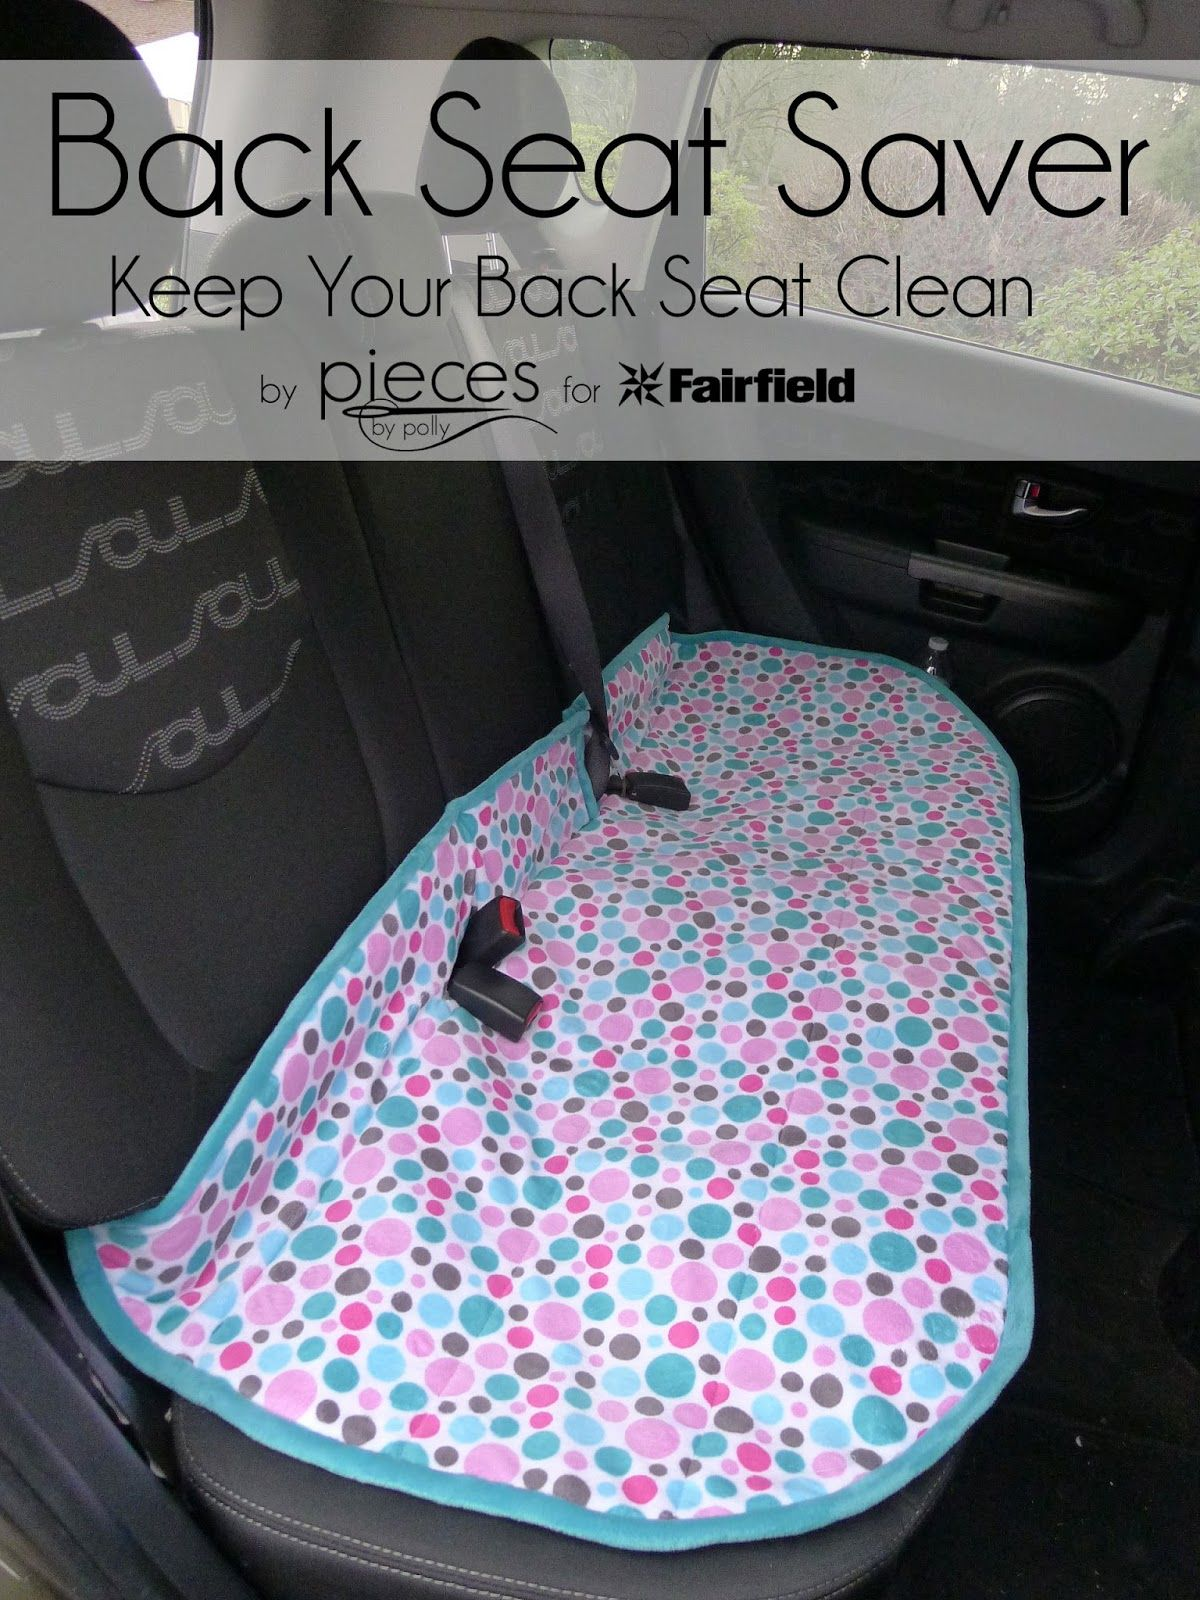 Pieces by Polly: Back Seat Saver - Keep Your Car Seat Clean - Life Hack #sewingprojects